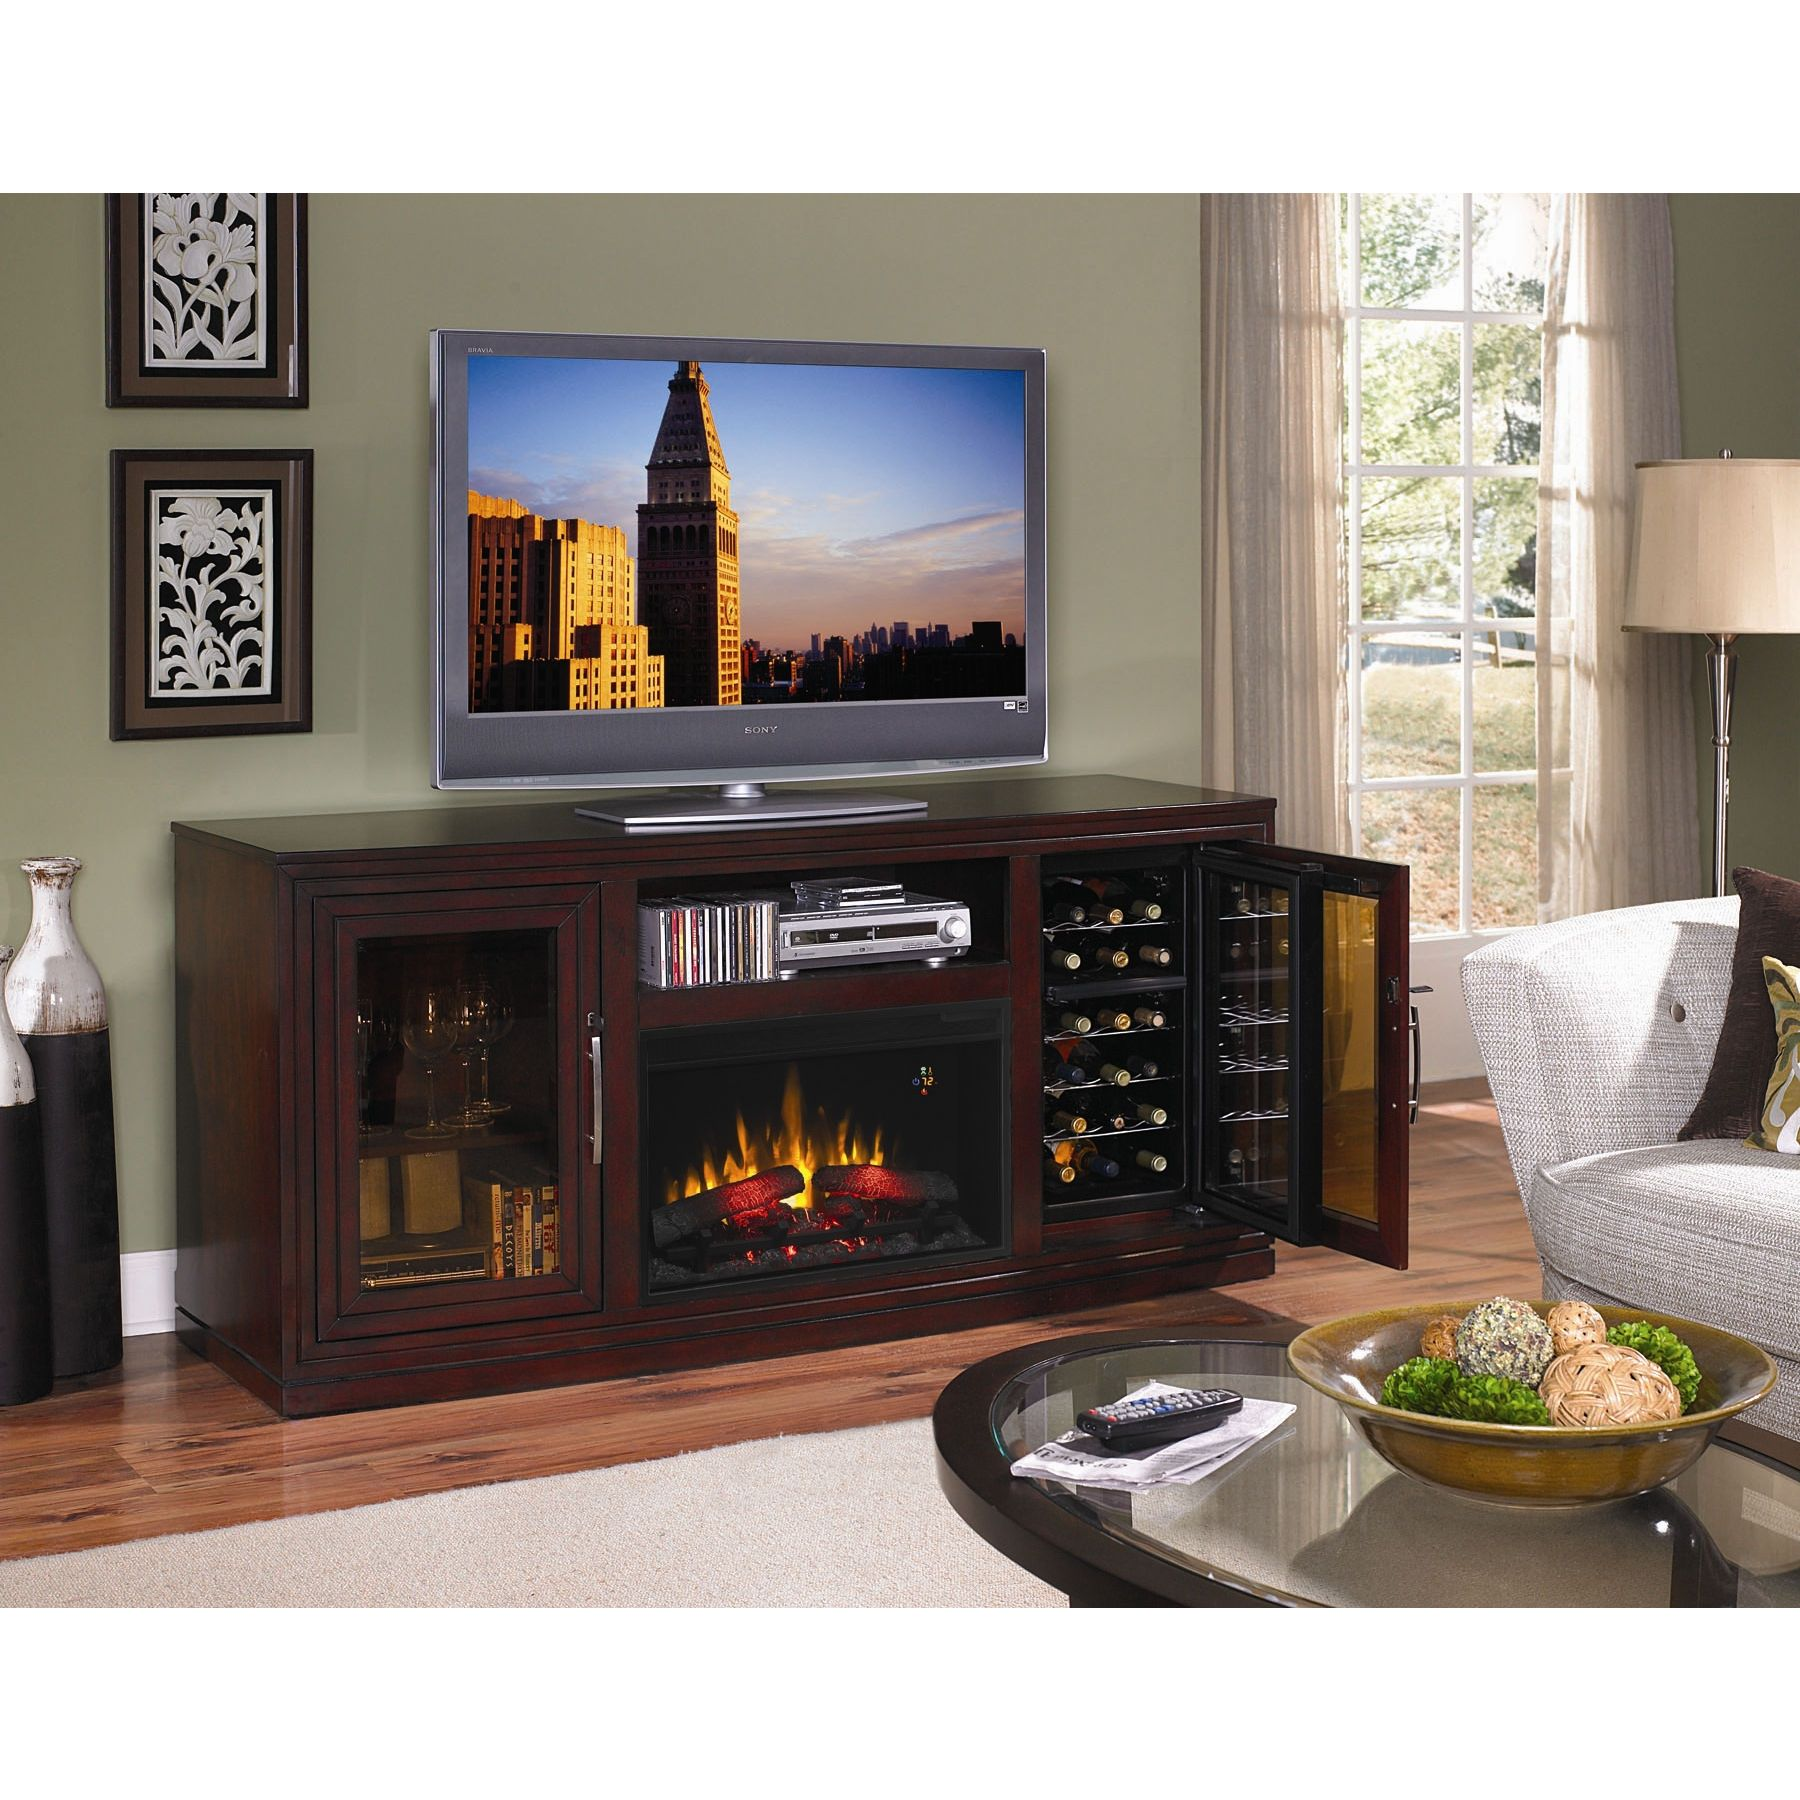 TV Stand, Fireplace, Wine Rack | For the Home | Pinterest ...